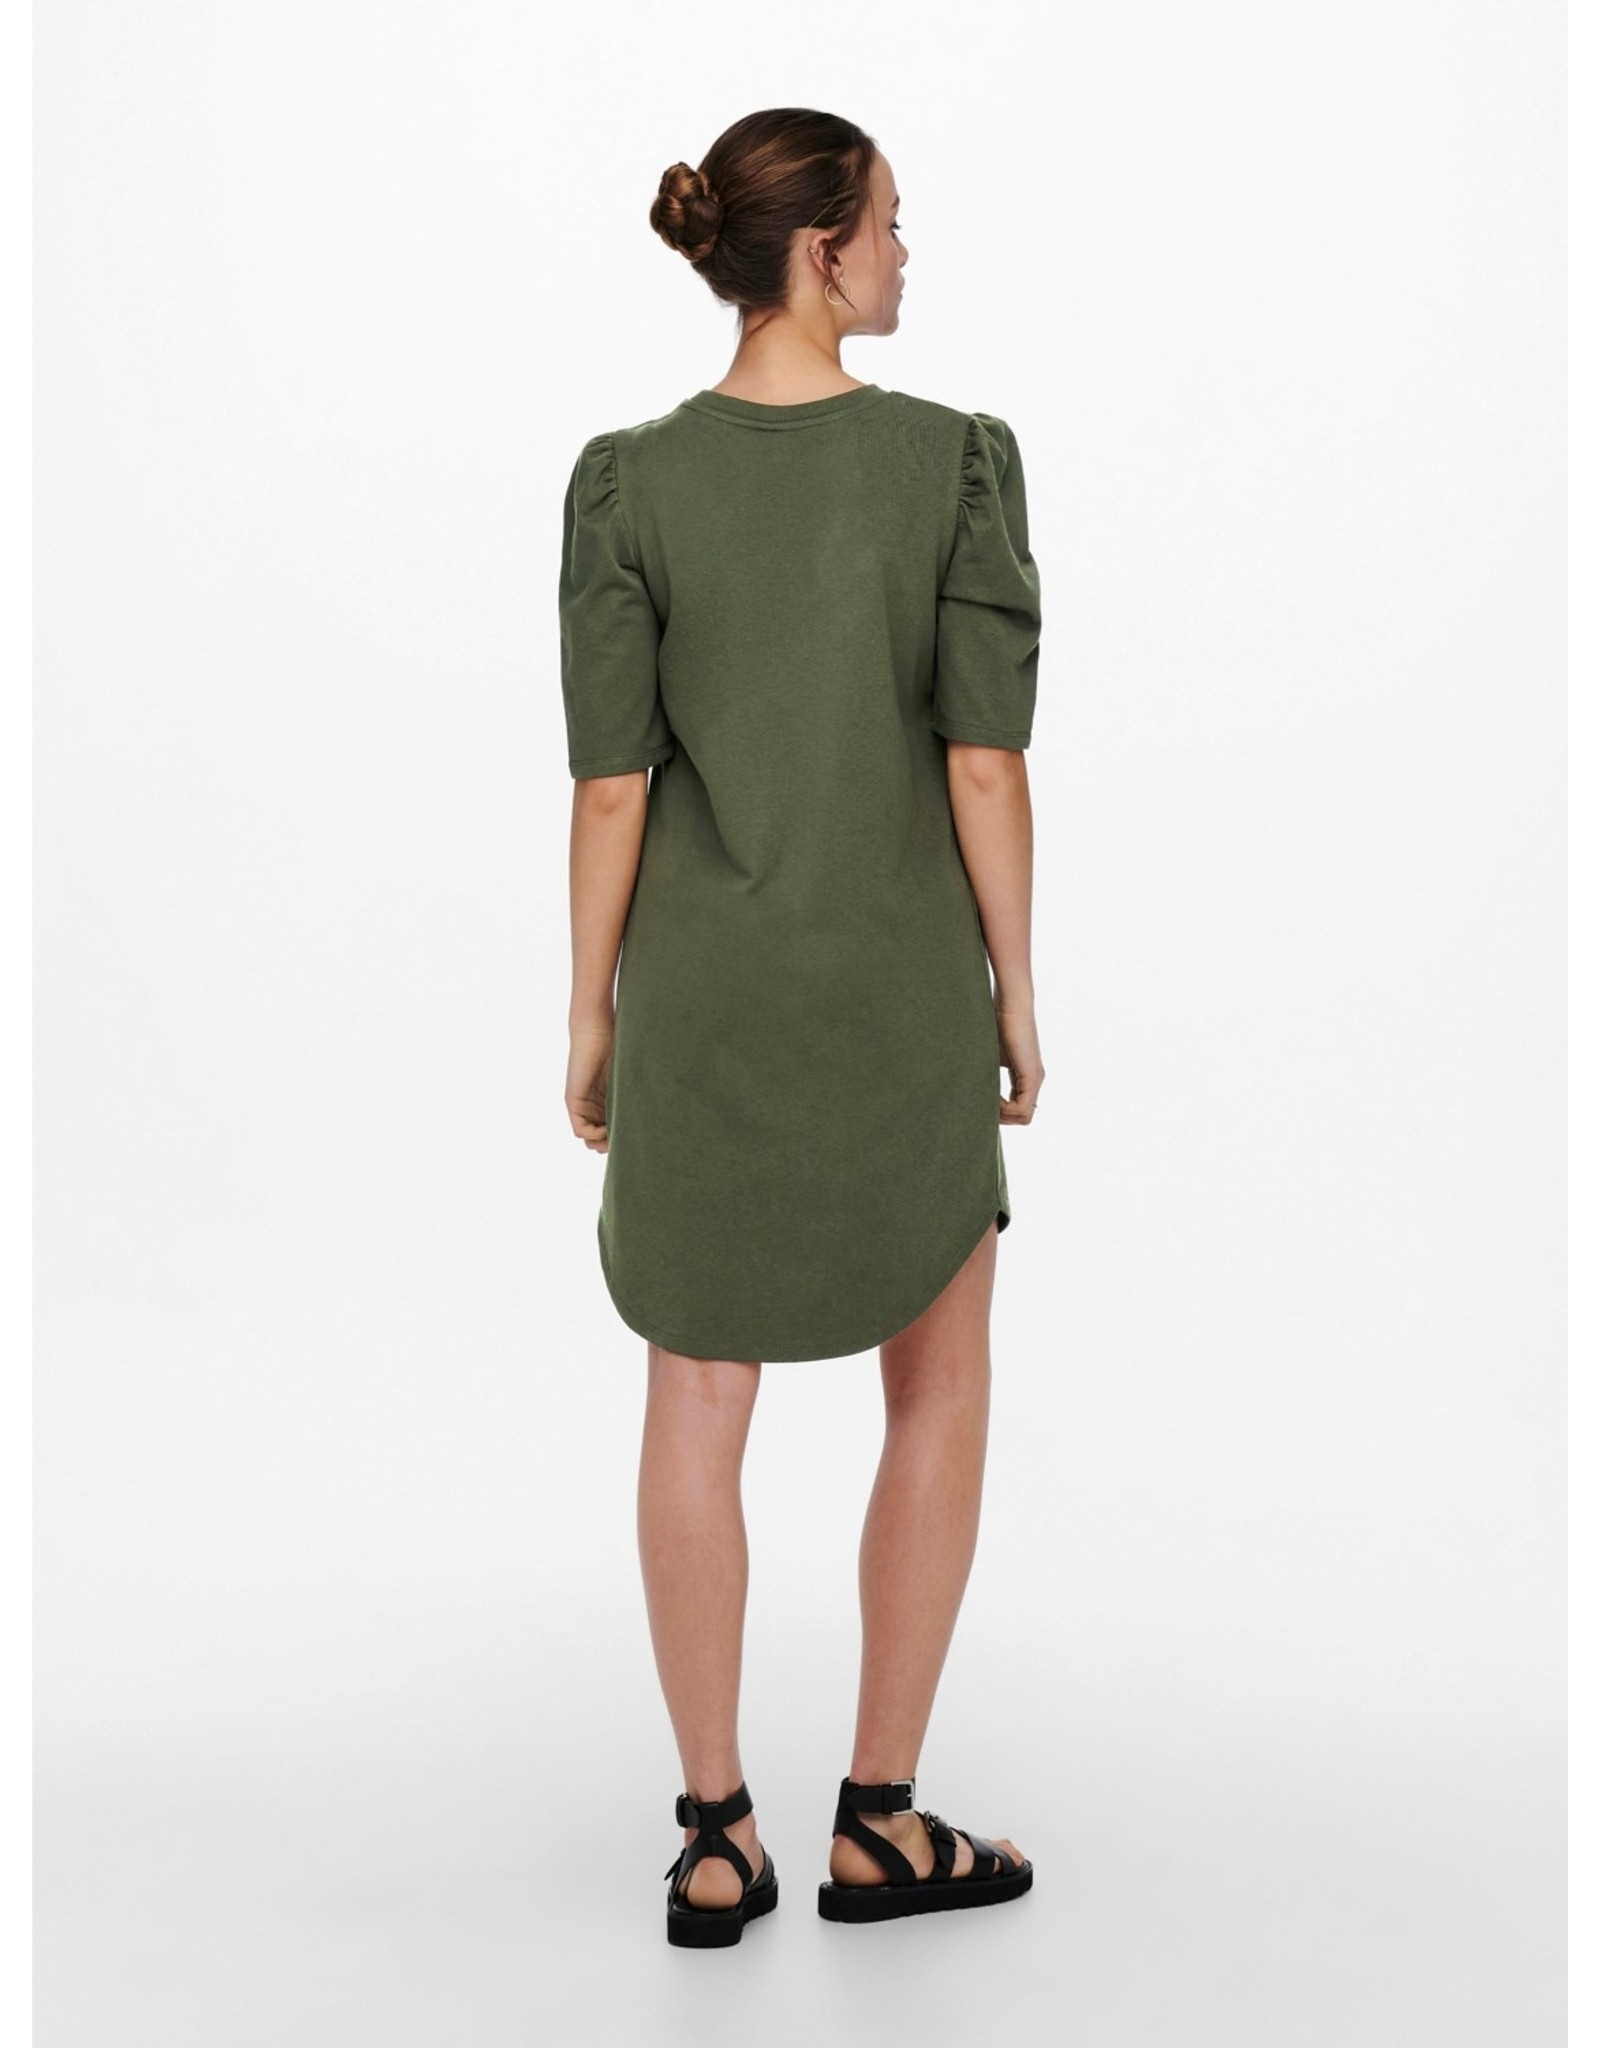 IVY DRESS KHAKI